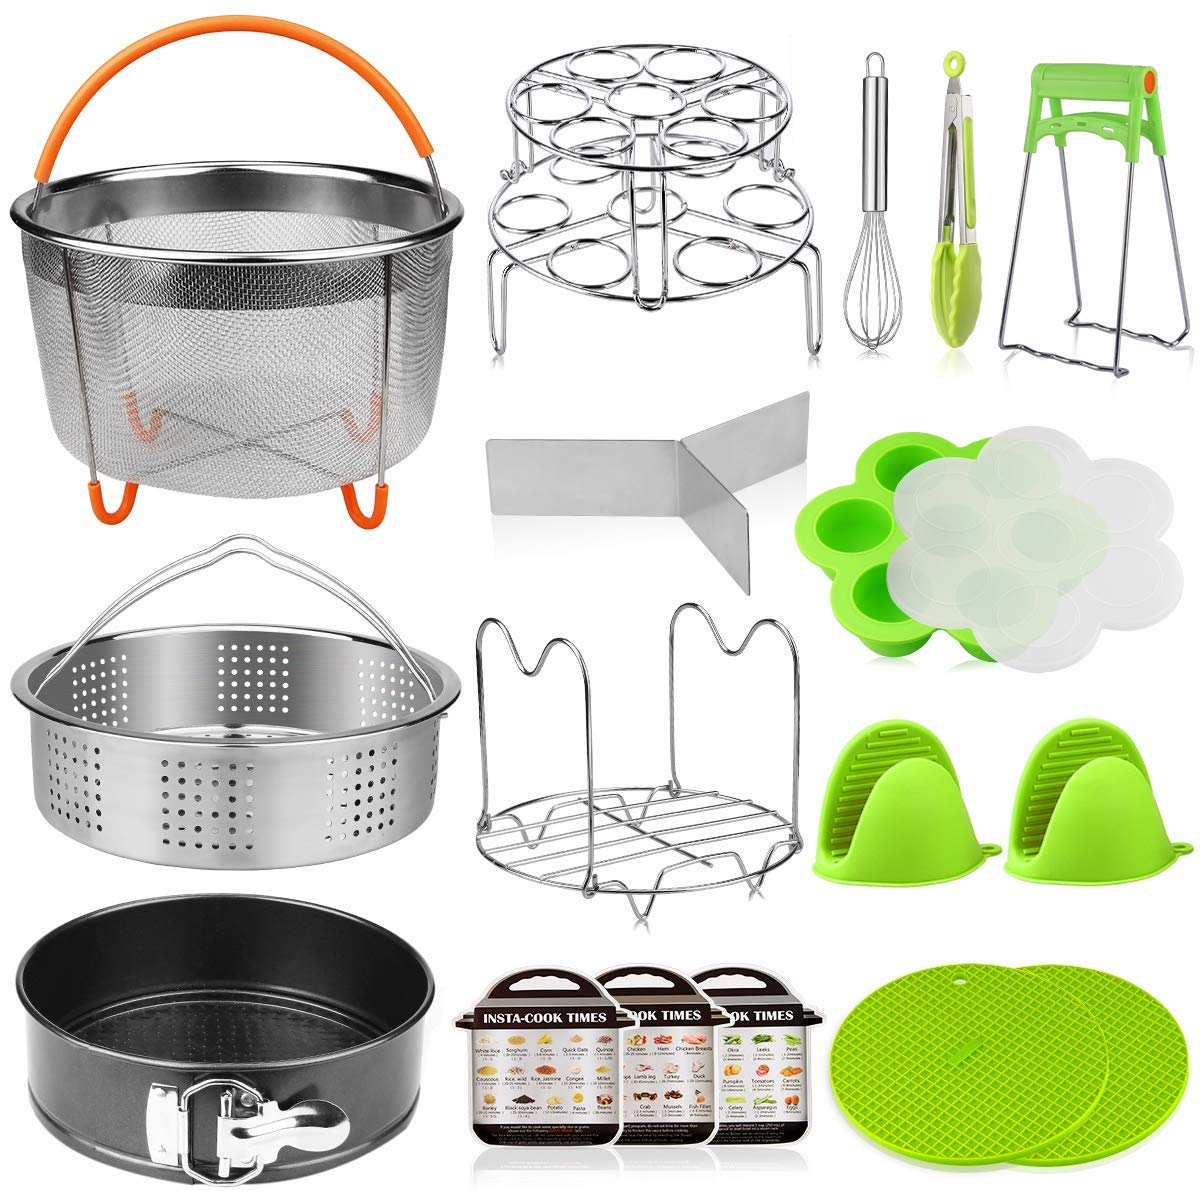 Aiduy 18 pieces Pressure Cooker Accessories Set Compatible with Instant Pot 6,8 Qt - 2 Steamer Baskets, Springform Pan, Stackable Egg Steamer Rack, Egg Beater, 2 Silicone Trivet Mats by Aiduy